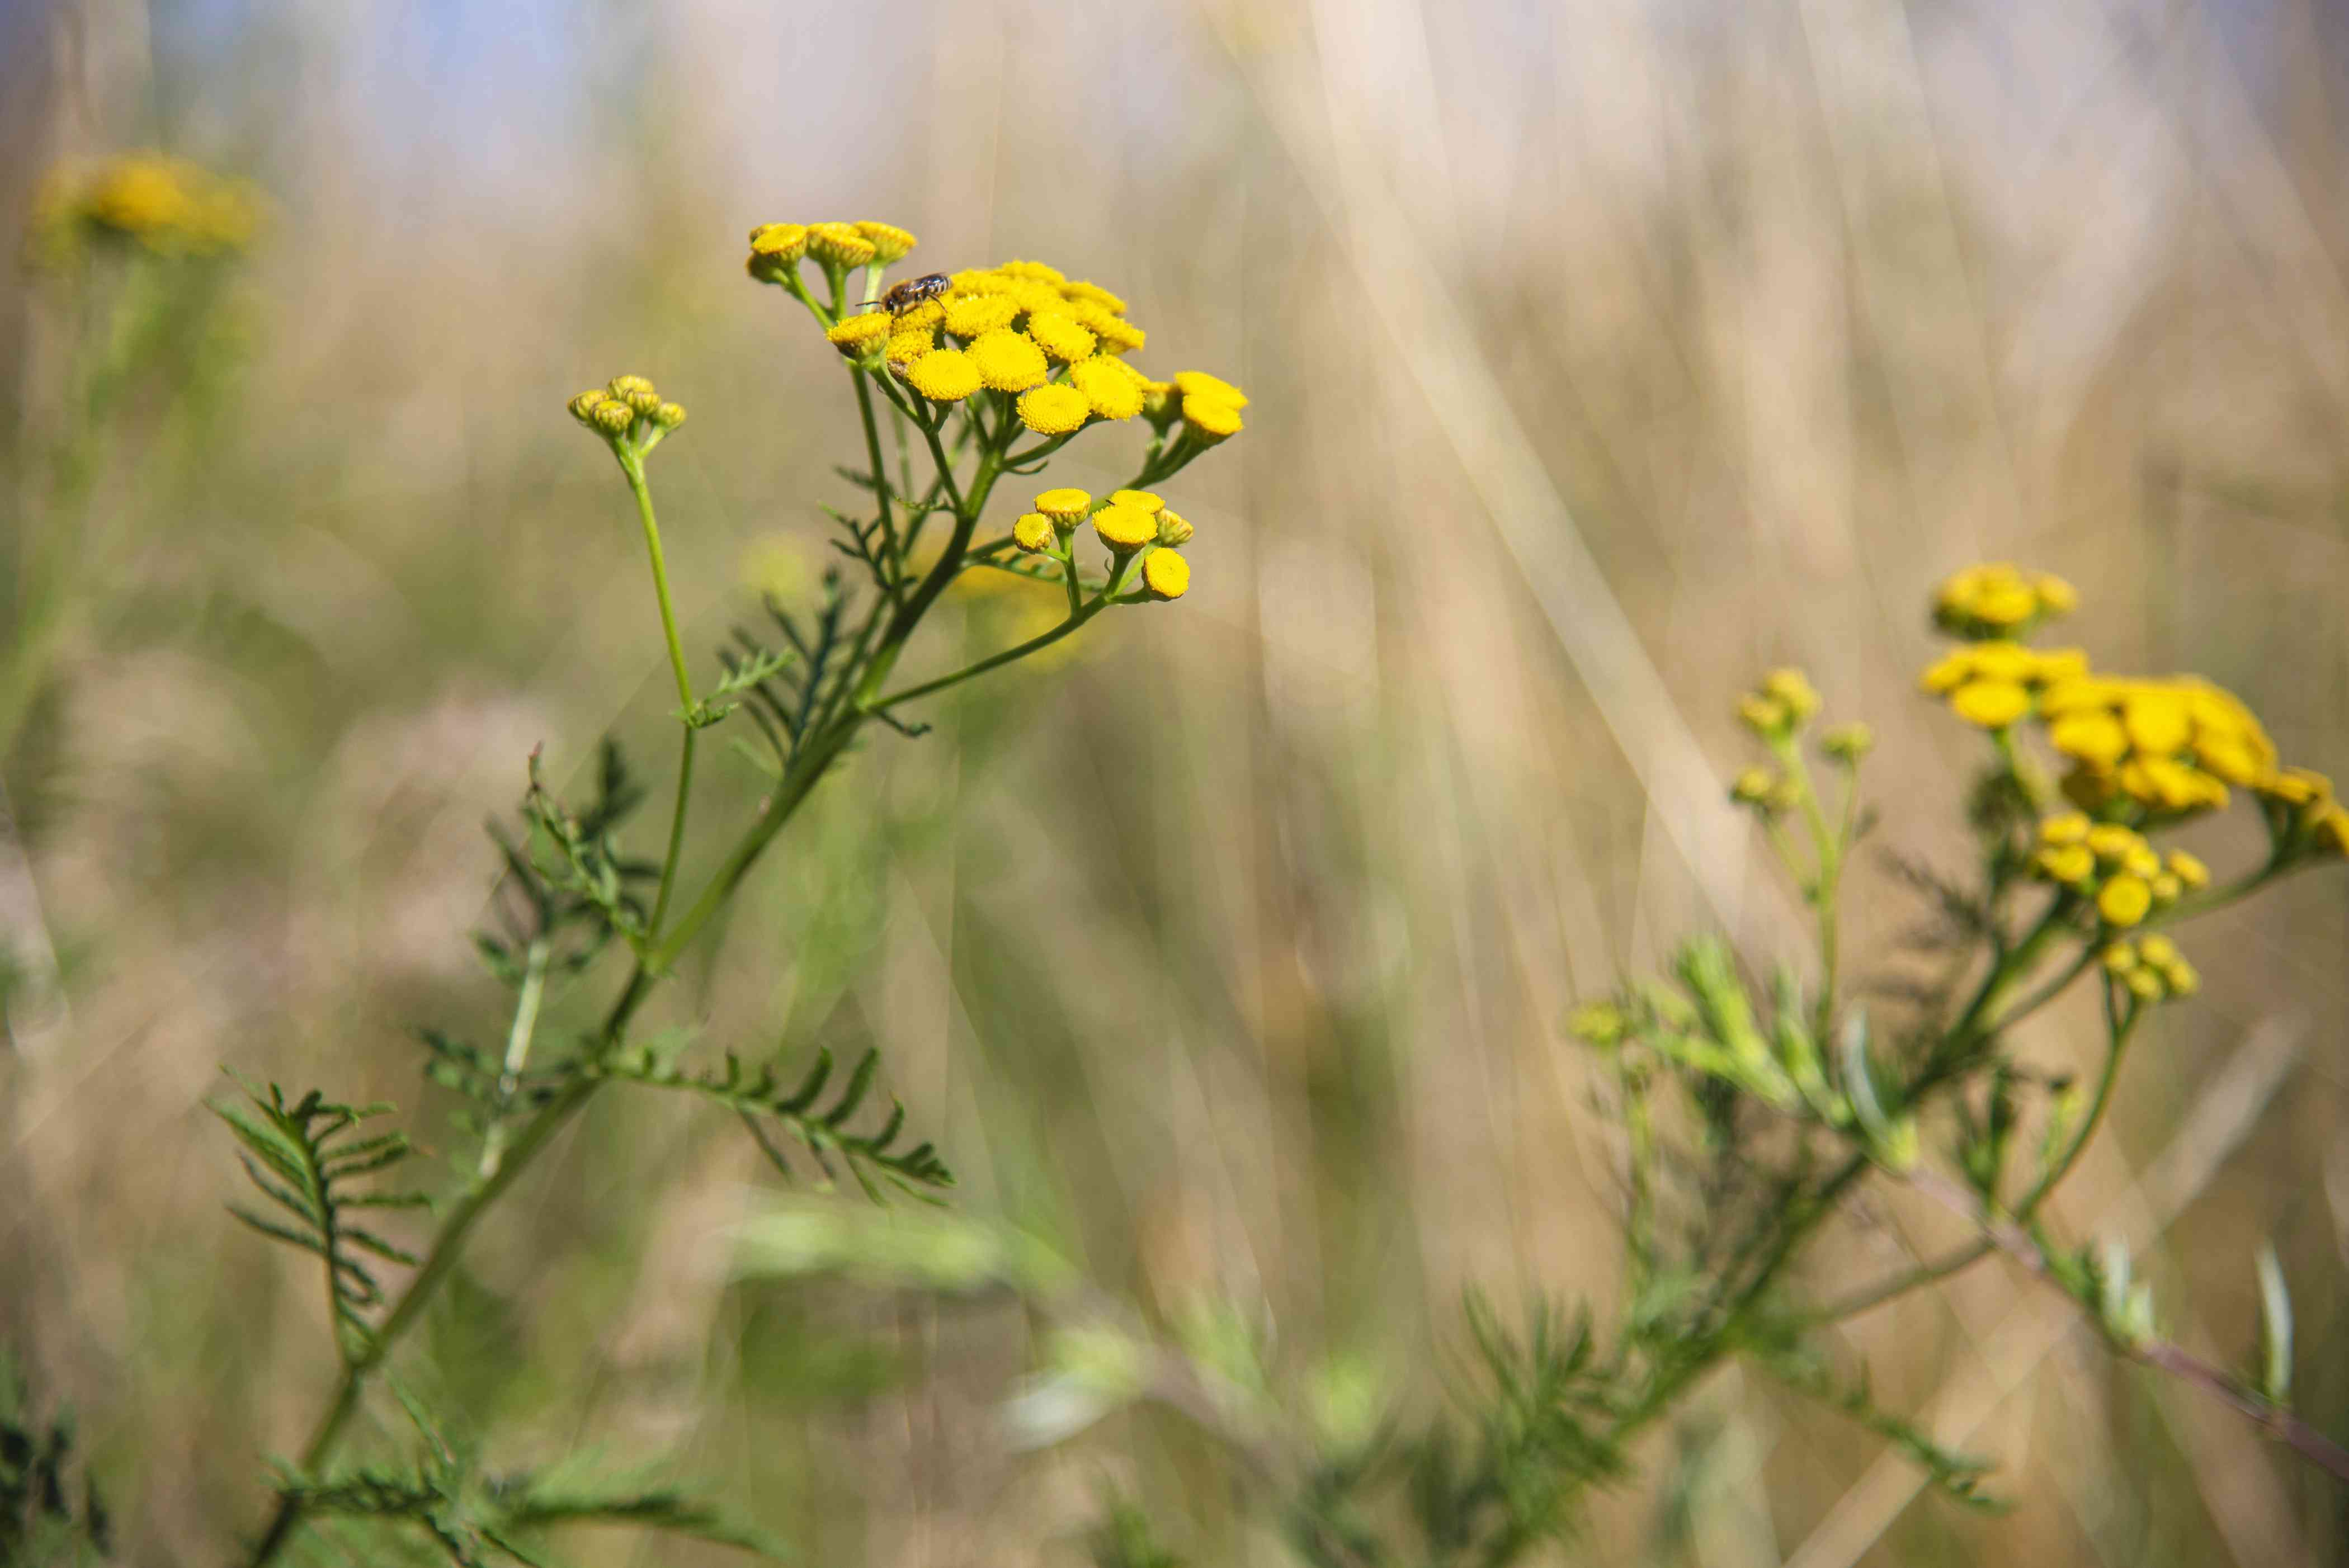 Common tansy plant with small yellow button-like flowers on tall stems with fern-like leaves